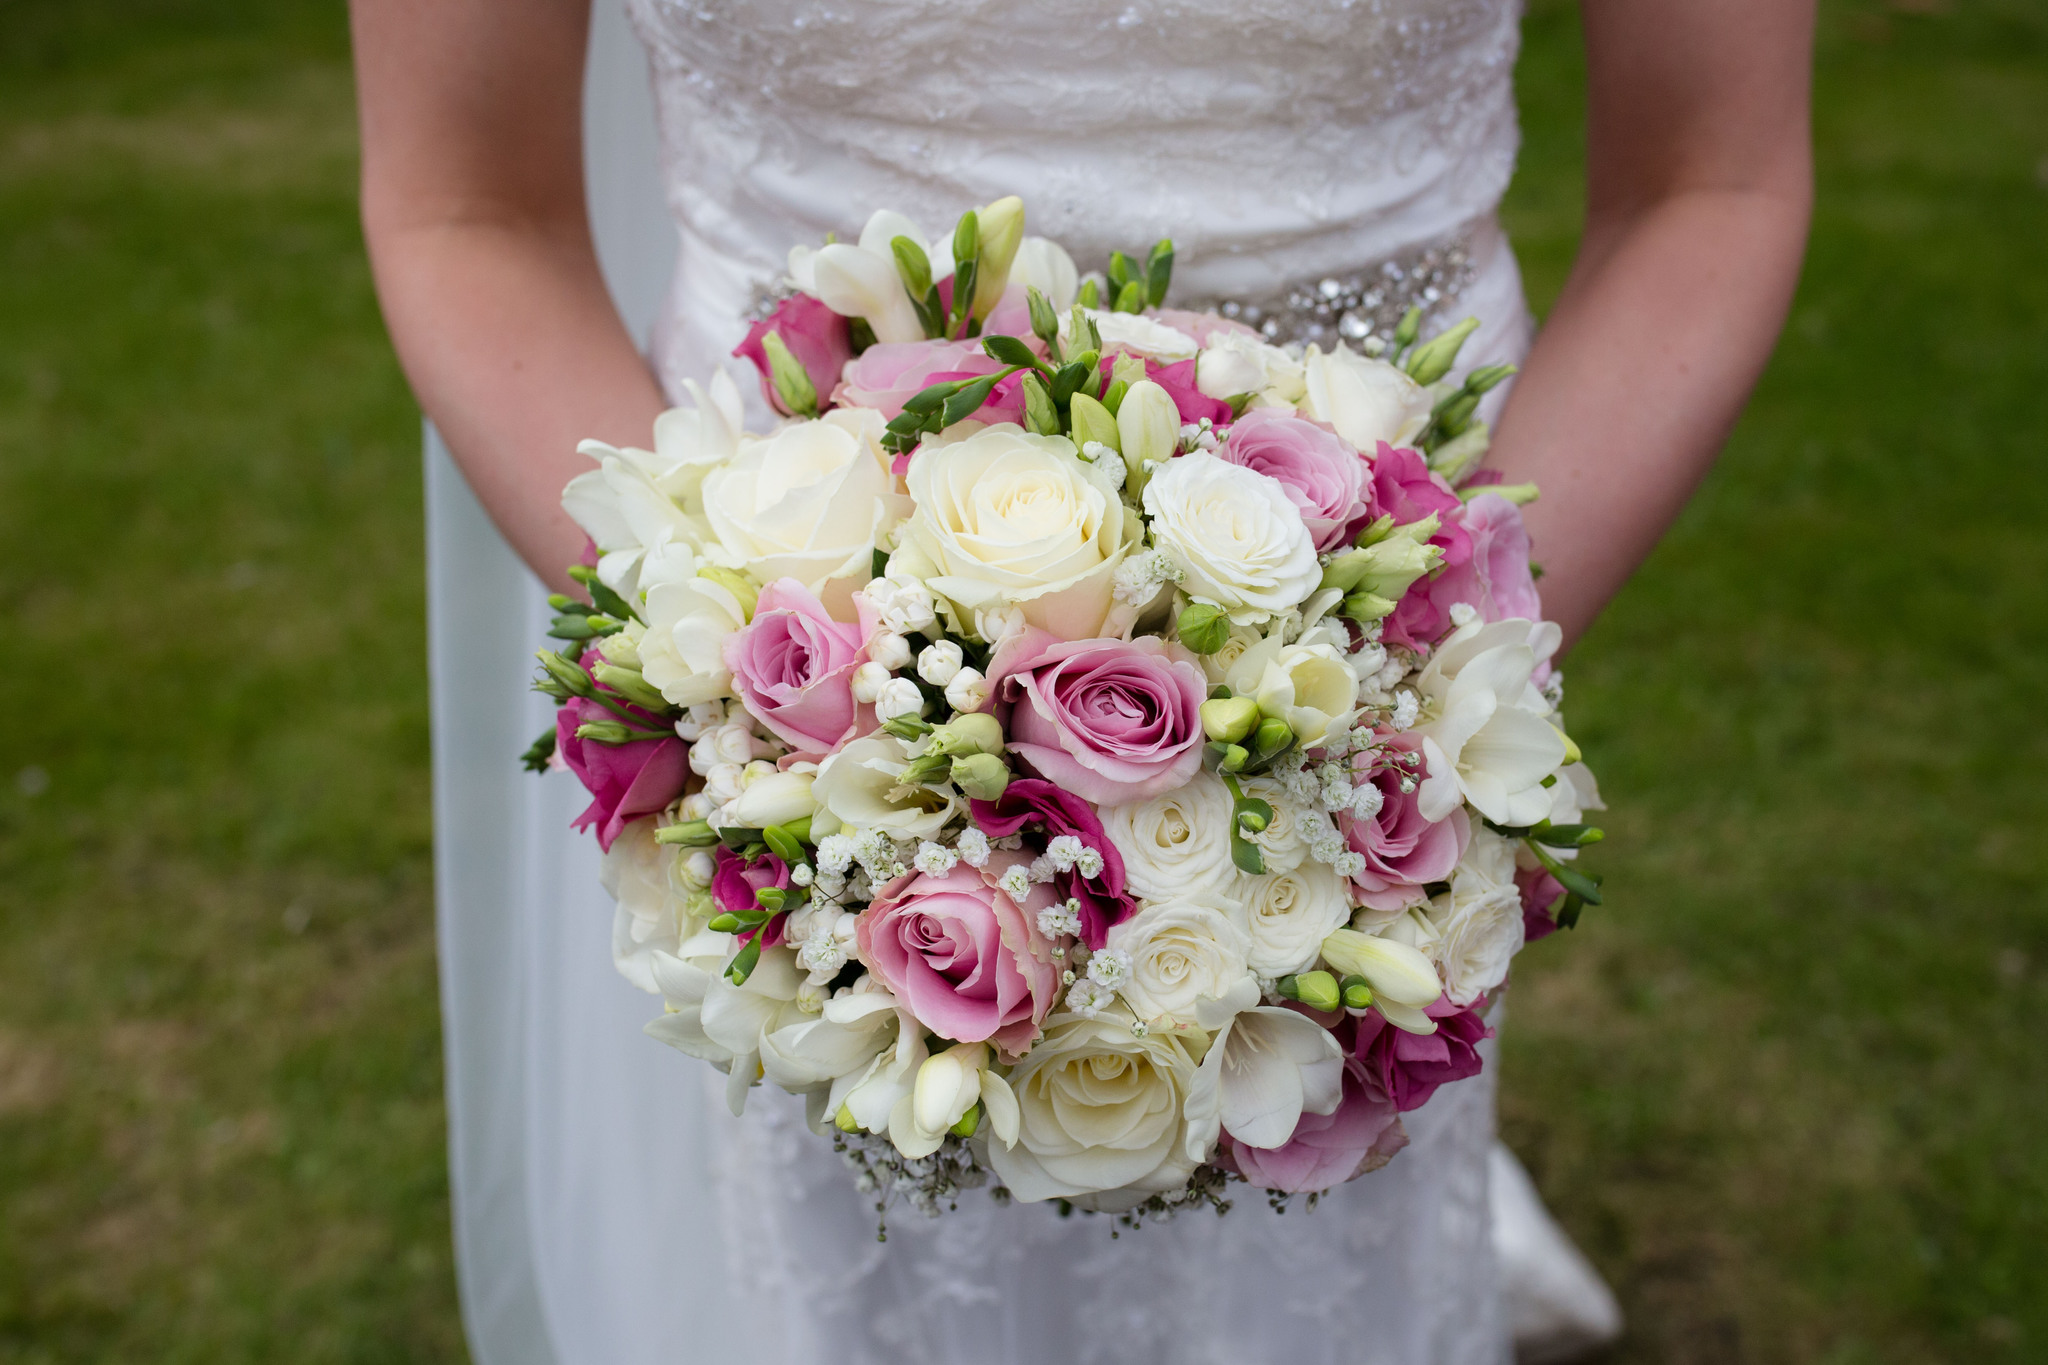 Julie Nicholas bridal bouquet at Albrighton Hall